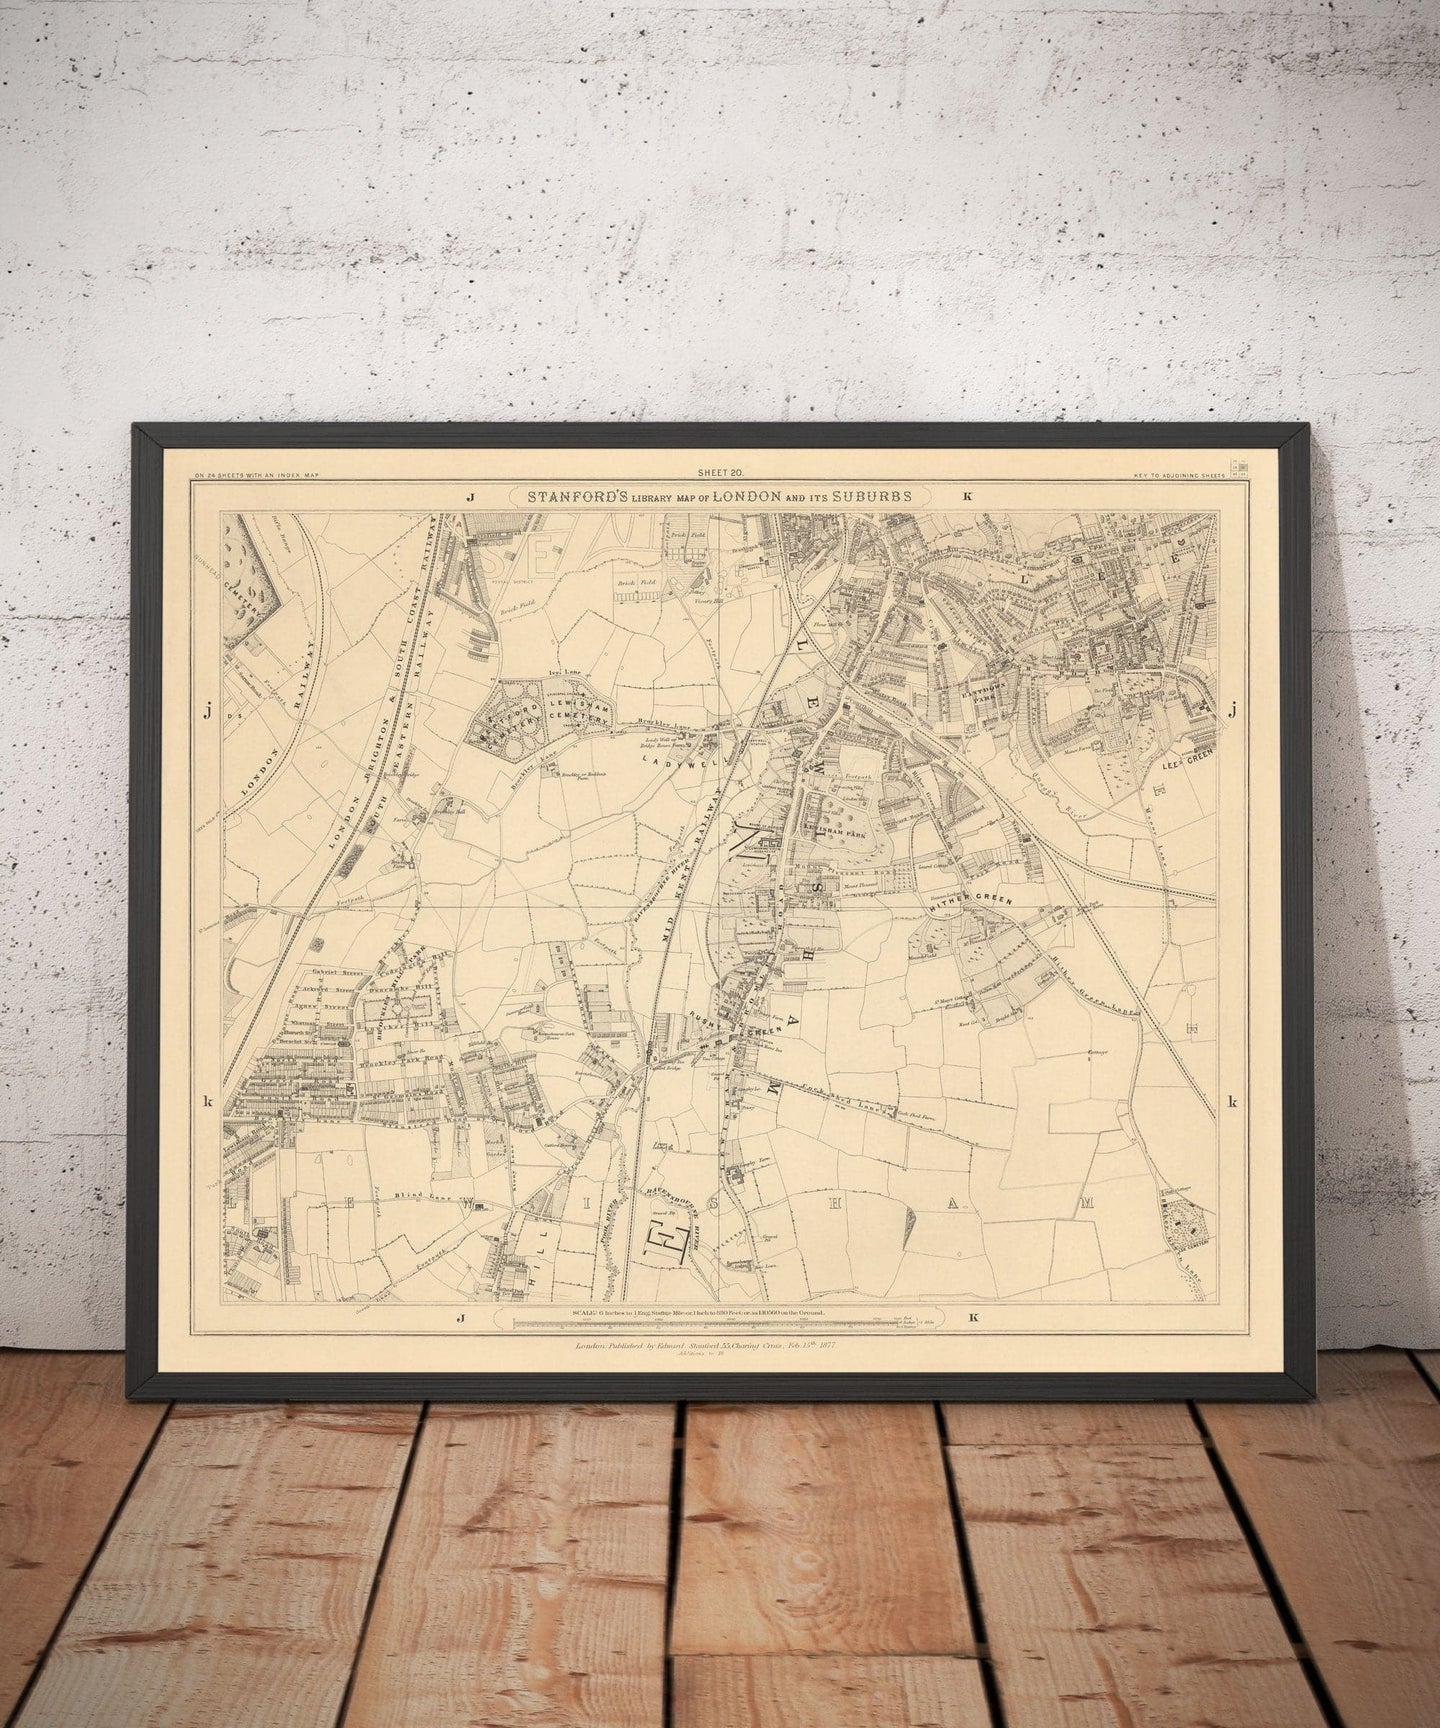 Old Map of South East London, 1862 - Lewisham, Ladywell, Brockley, Catford - Personalised Antique Christmas Gift - Framed, Unframed